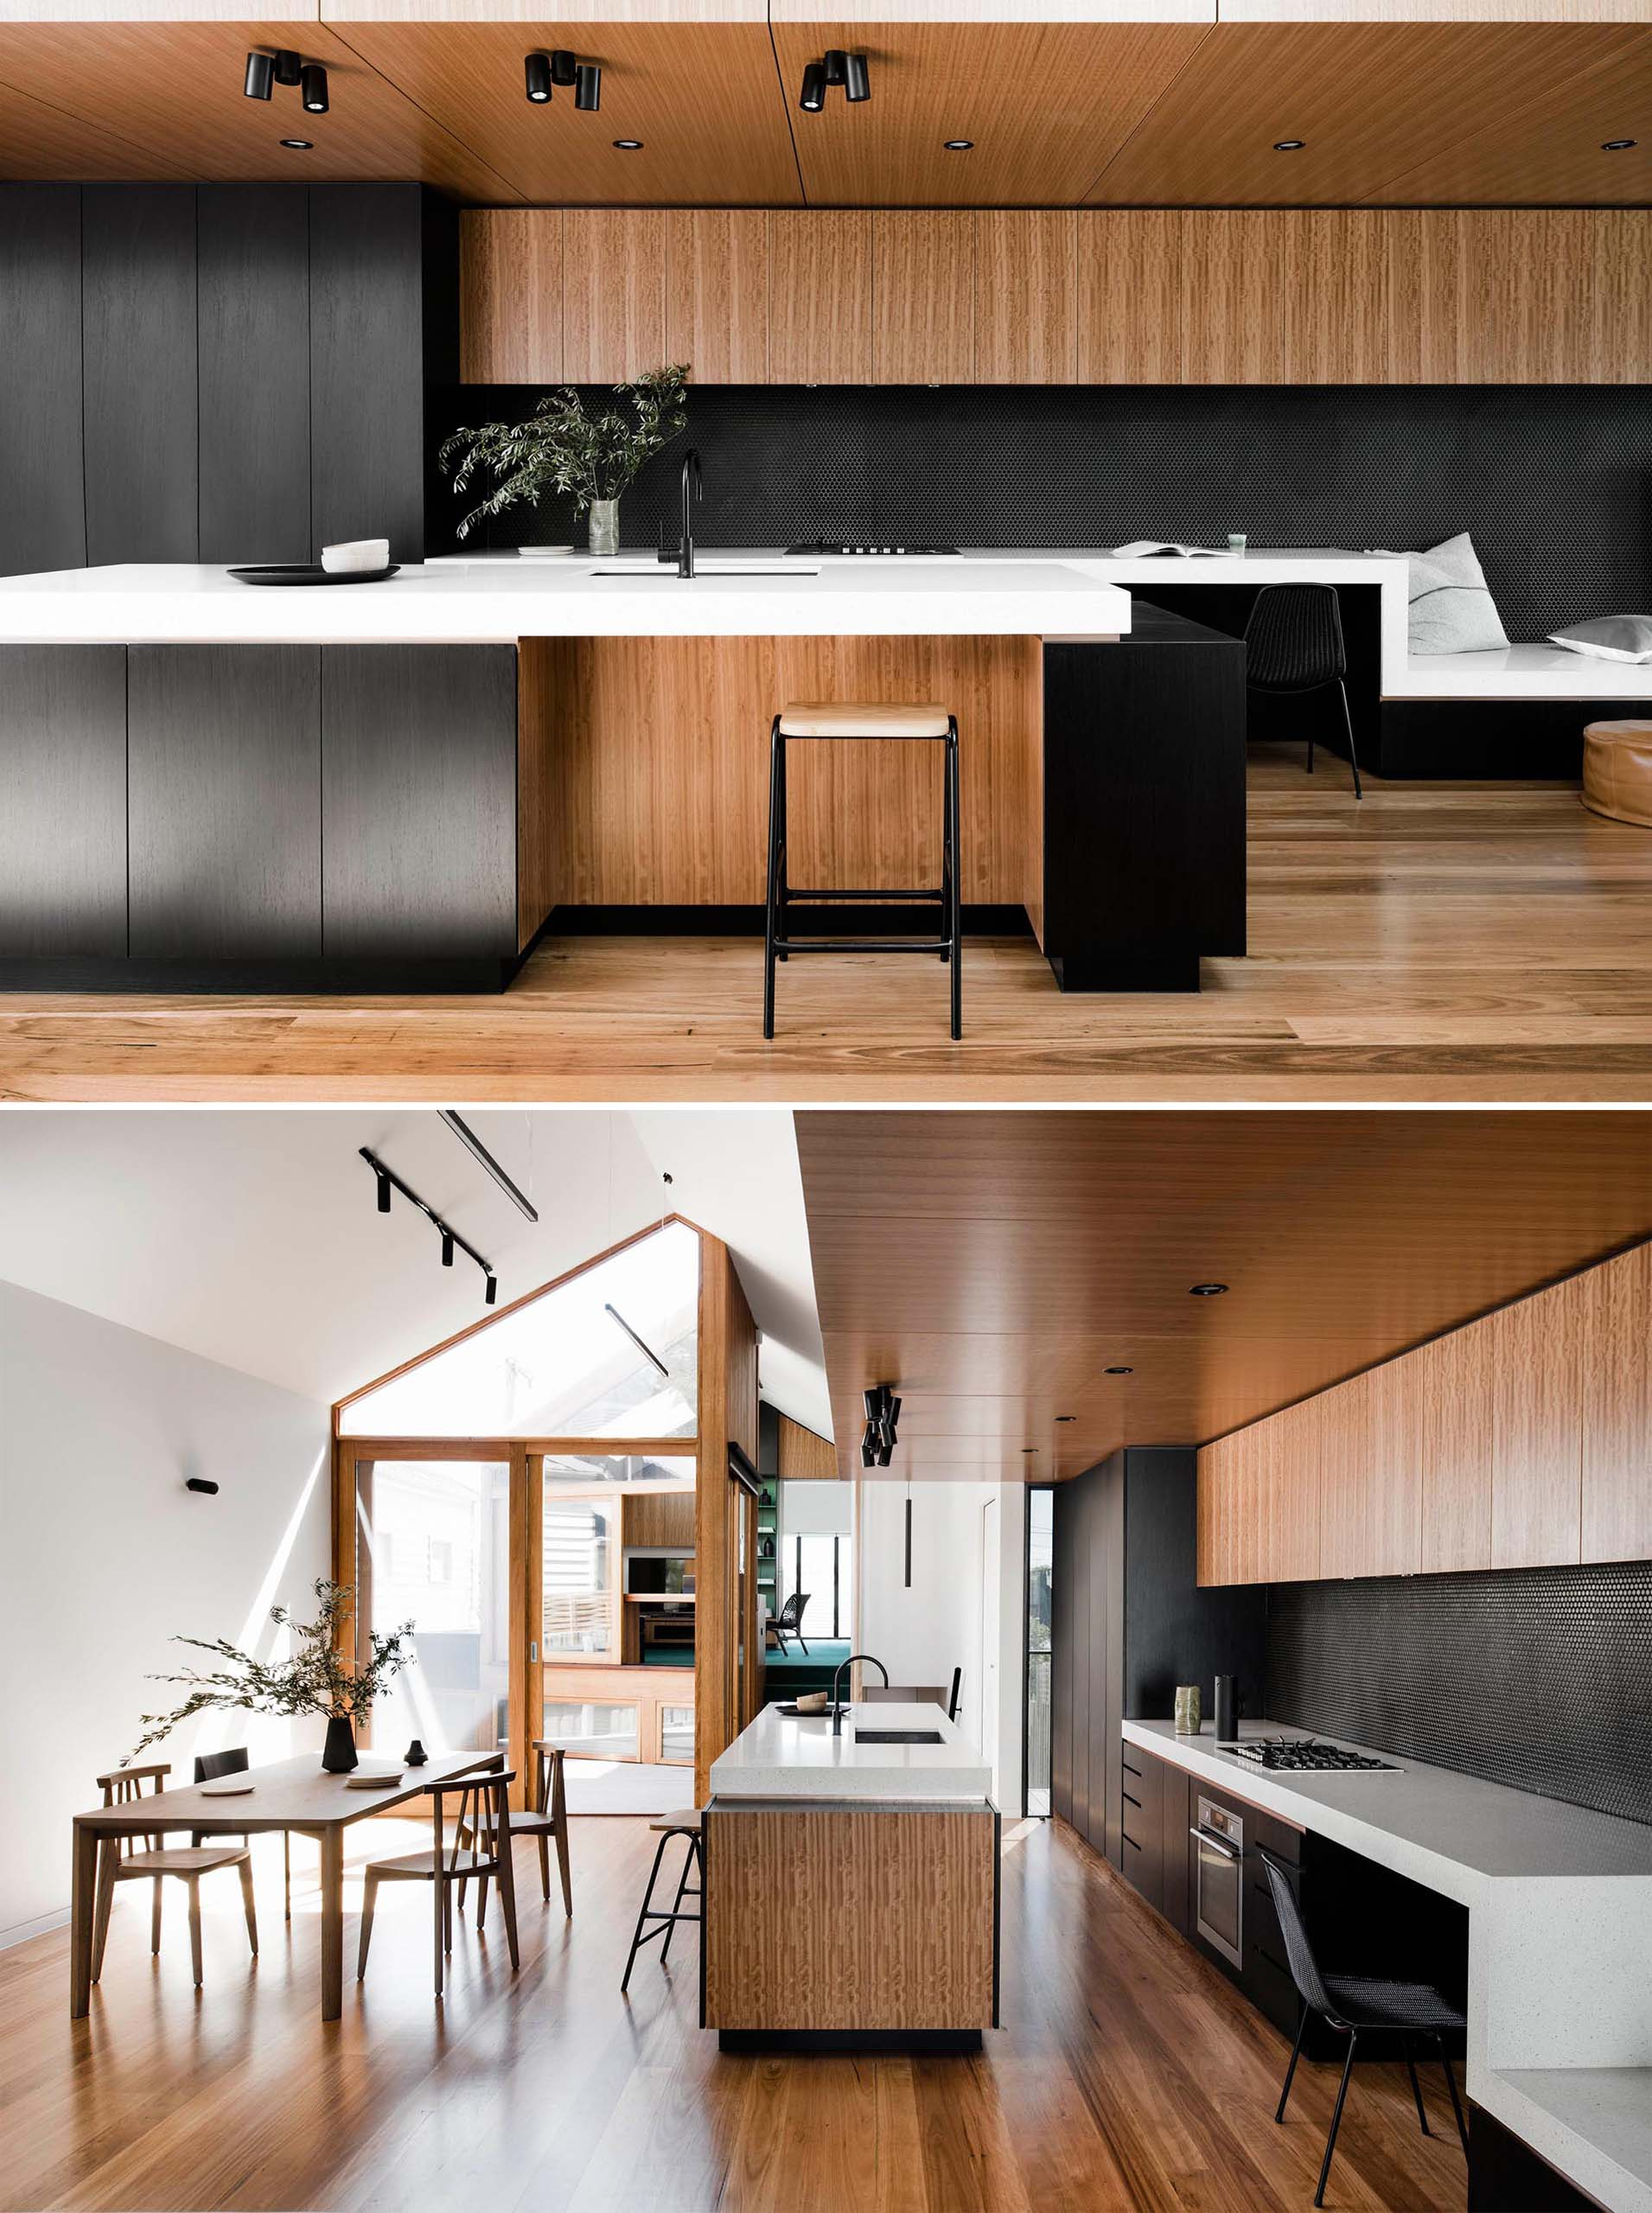 A modern kitchen with black cabinets and wood accents, has a white countertop that transforms into a desk, TV stand, and window bench.